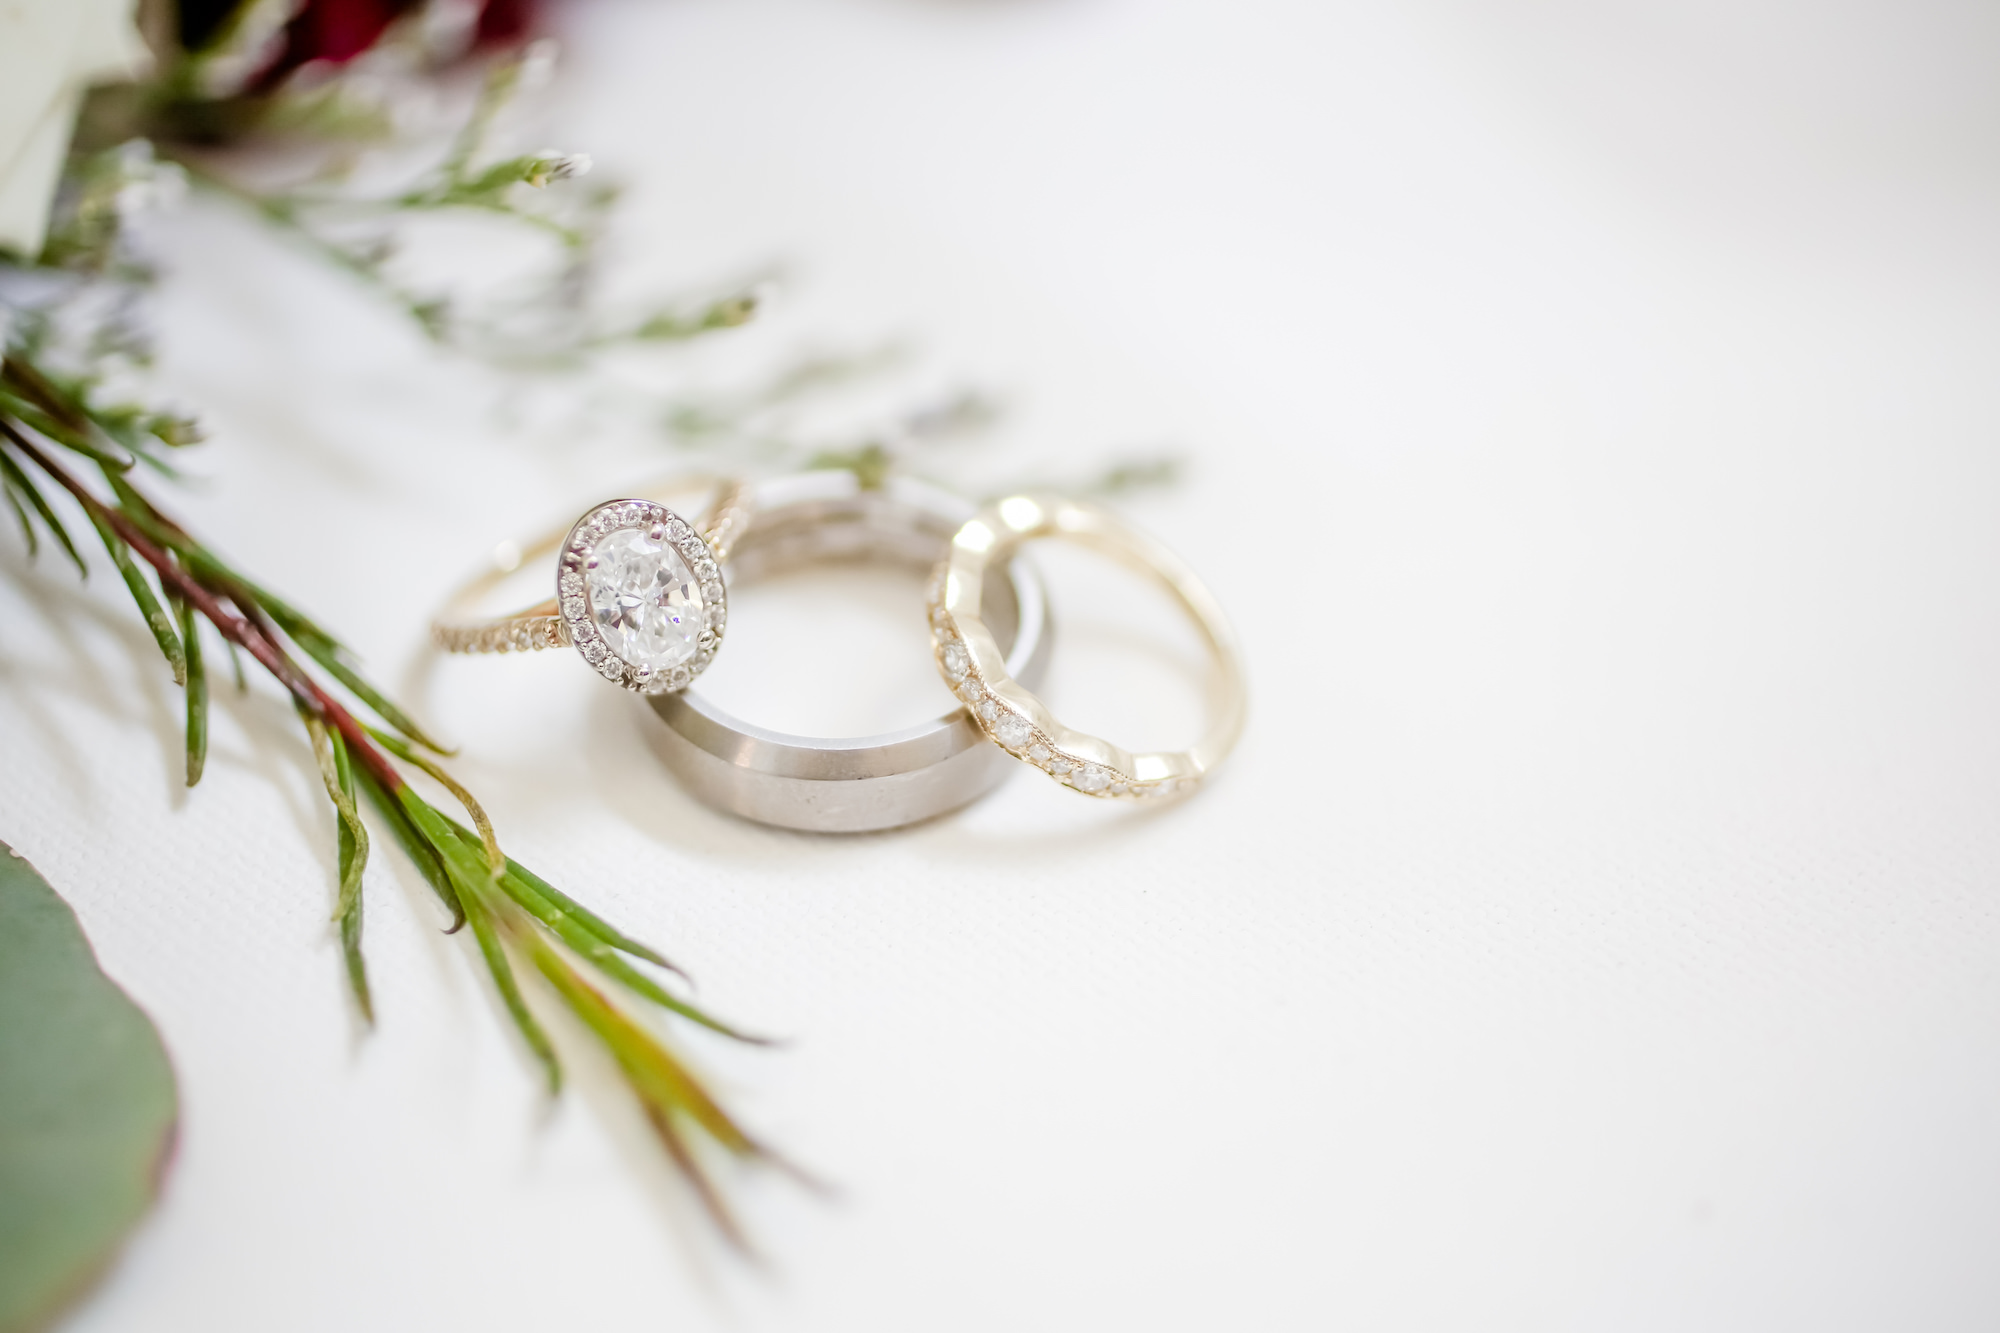 Florida Wedding Rings Detail Shot, Oval Diamond Halo Engagement Ring with Yellow Gold and Silver Bride and Groom Bands   Tampa Bay Wedding Photographer Lifelong Photography Studio